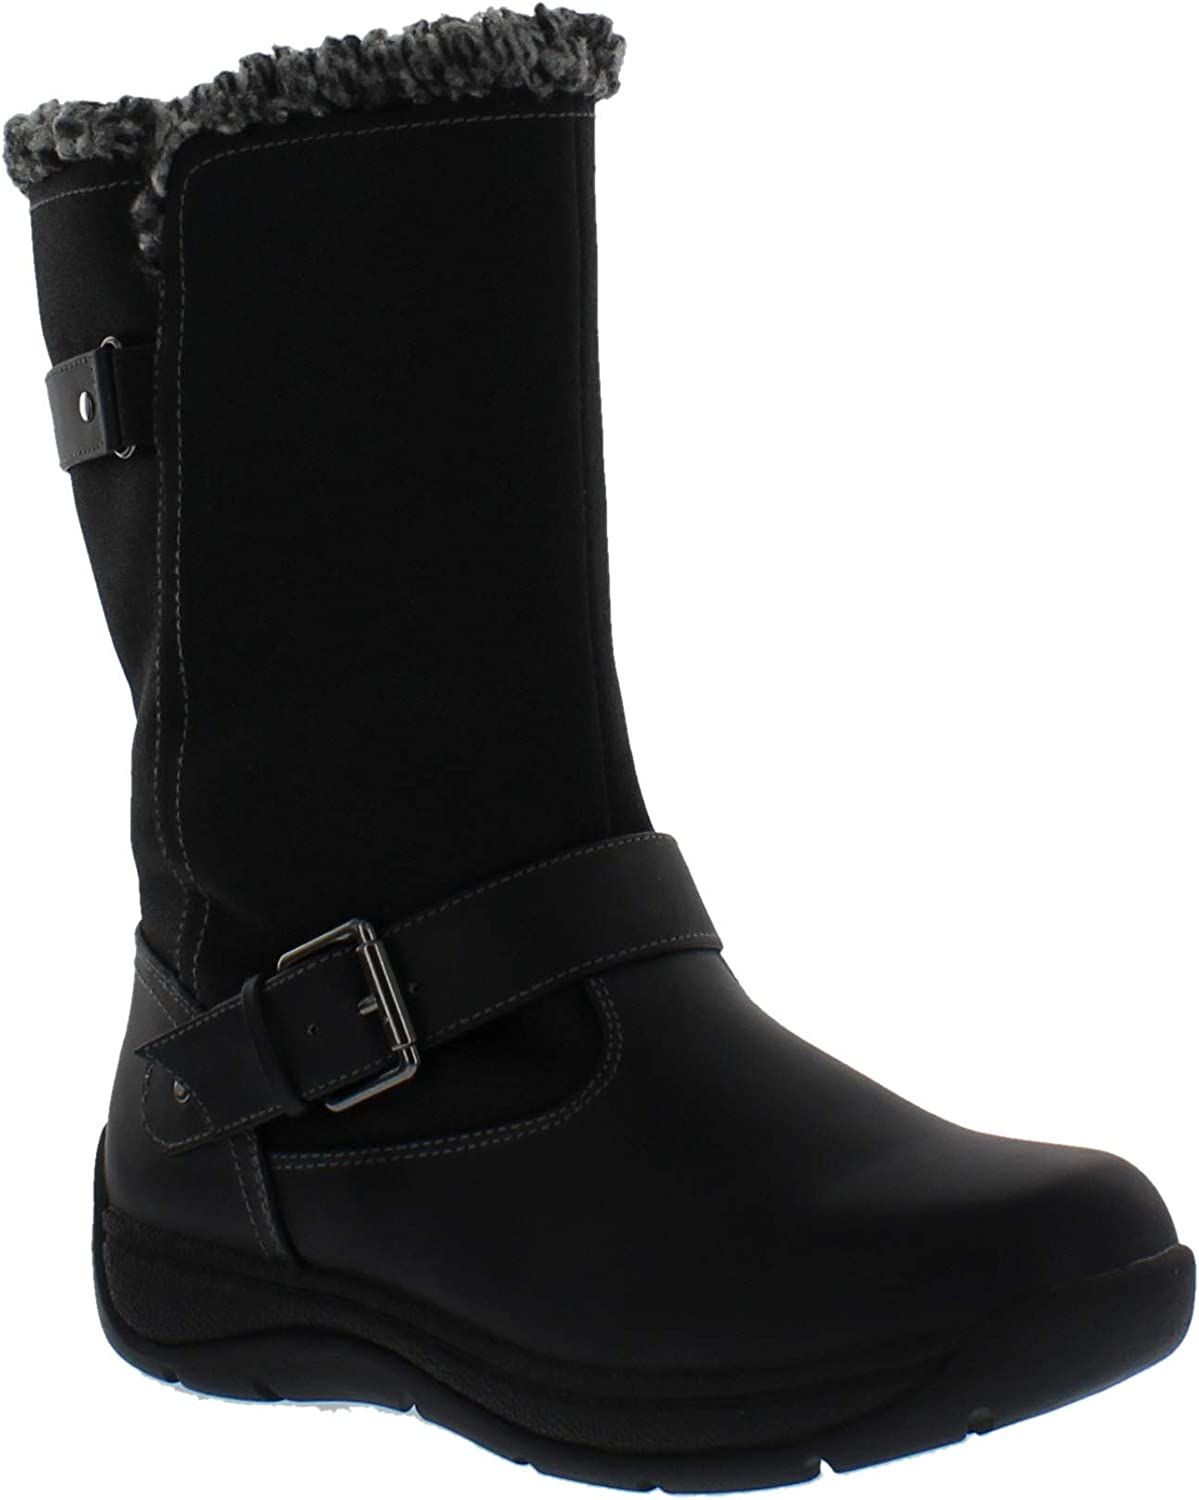 Weatherproof Womens Cold Weather Boots with Side Zipper (Alaska) Waterproof Insulated Winter Boots for Comfort, Durability - Keeps Feet Warm & Dry